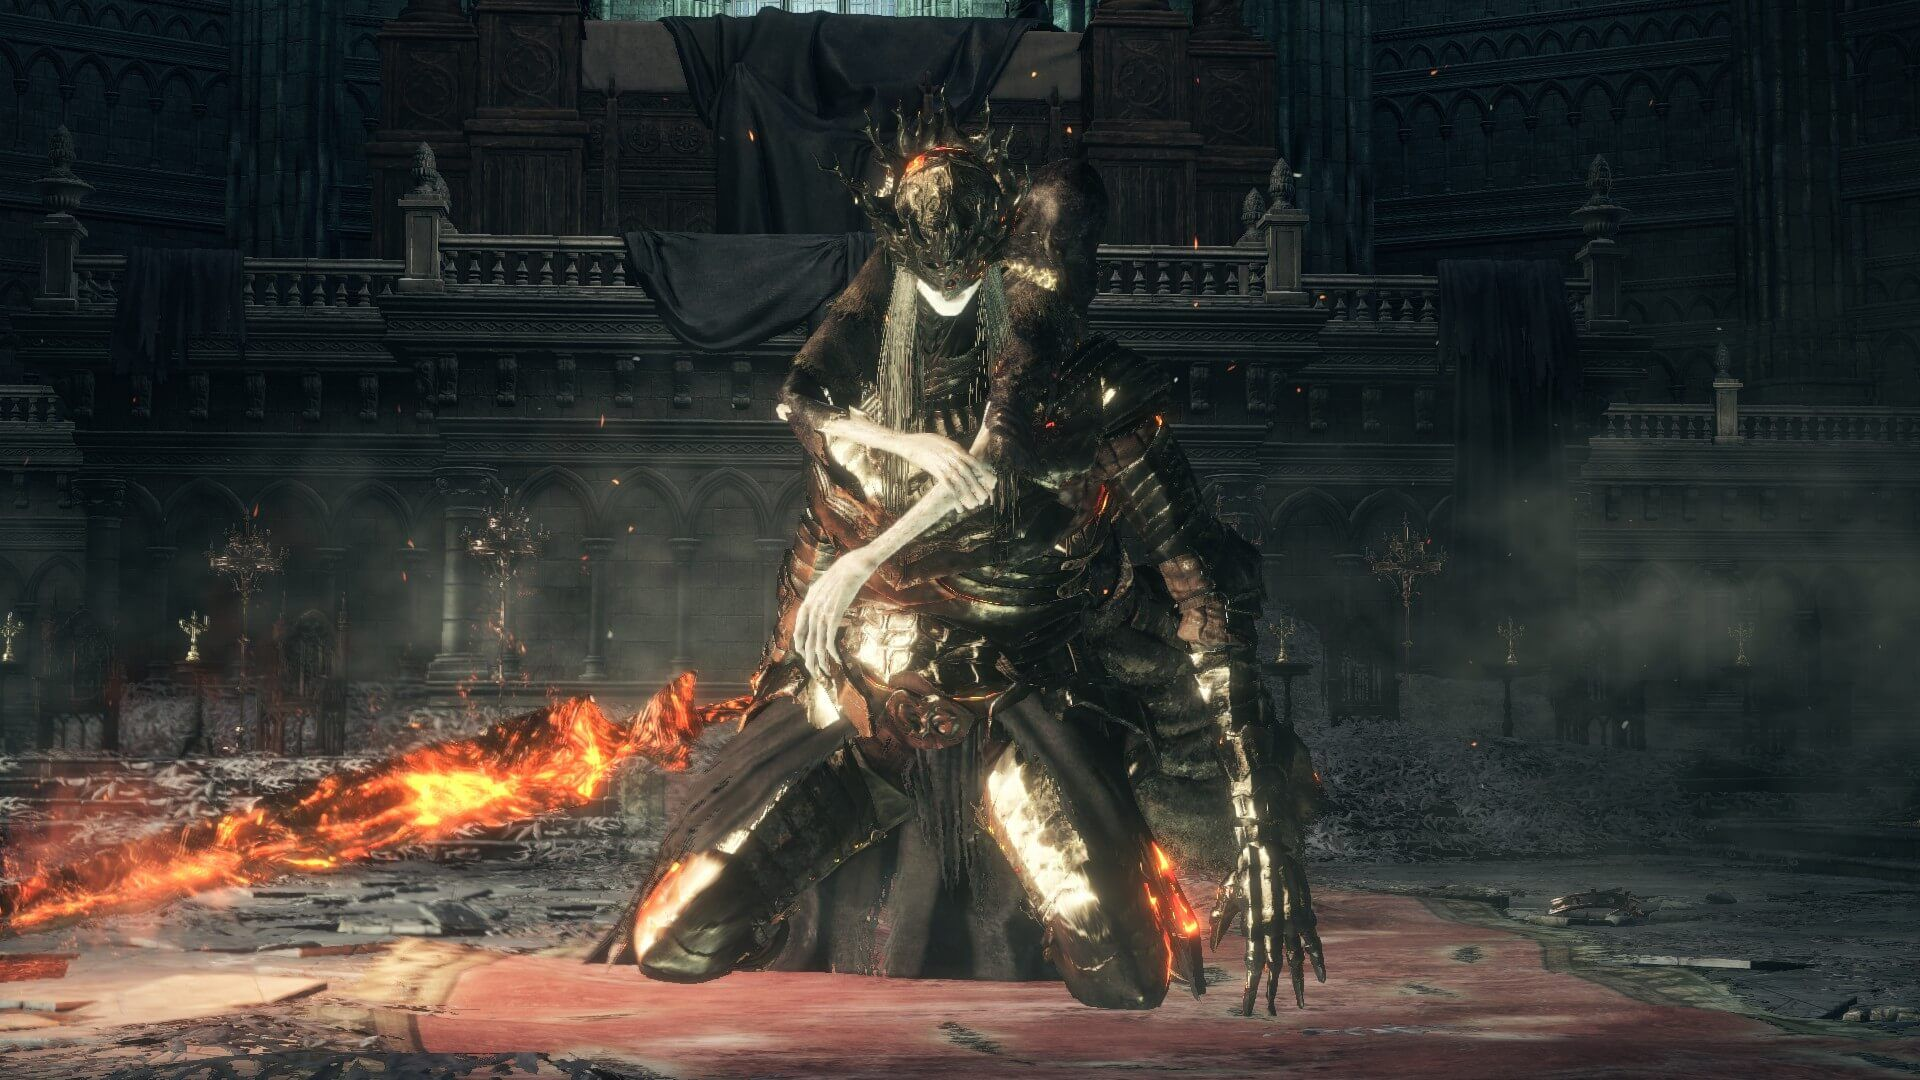 Dark Souls 3 Guide: How to Beat the Twin Princes Easily